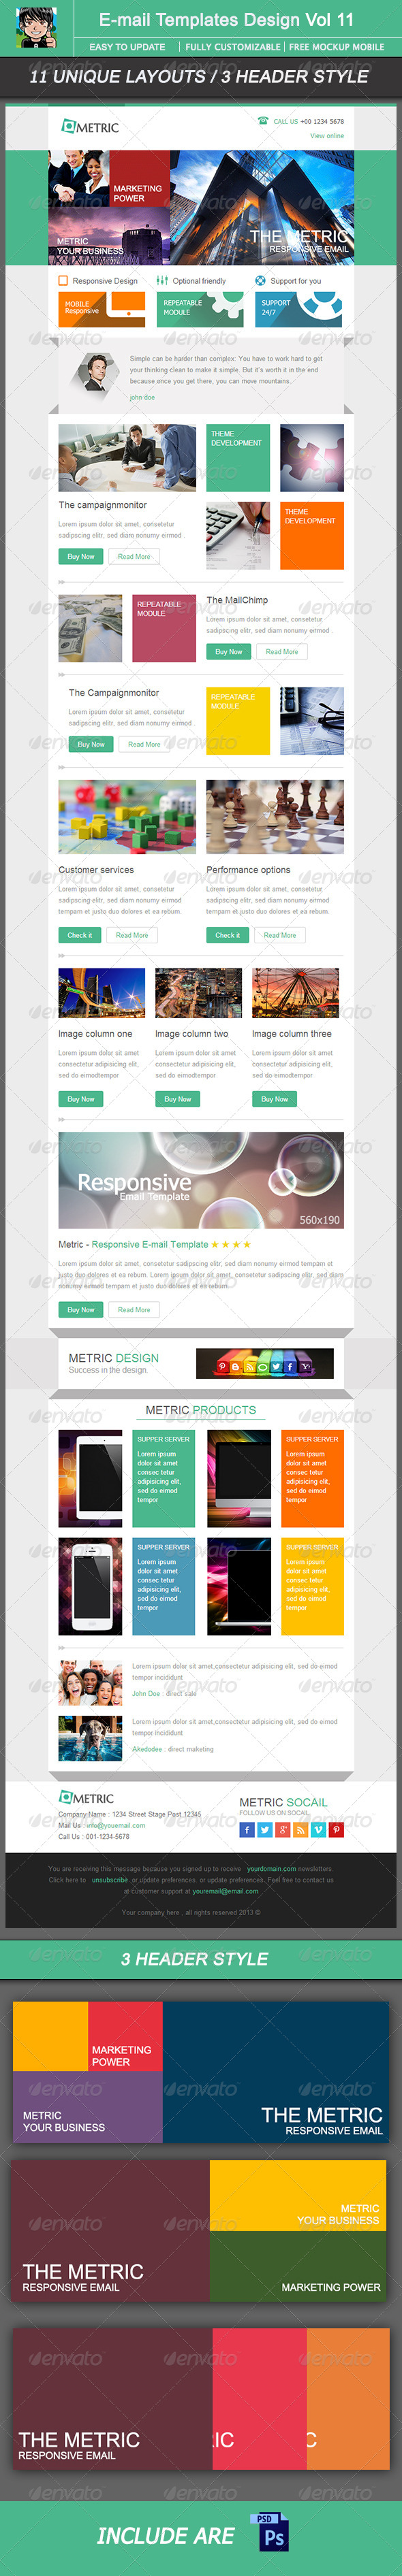 Metric-Email Template Design Vol 11 - E-newsletters Web Elements